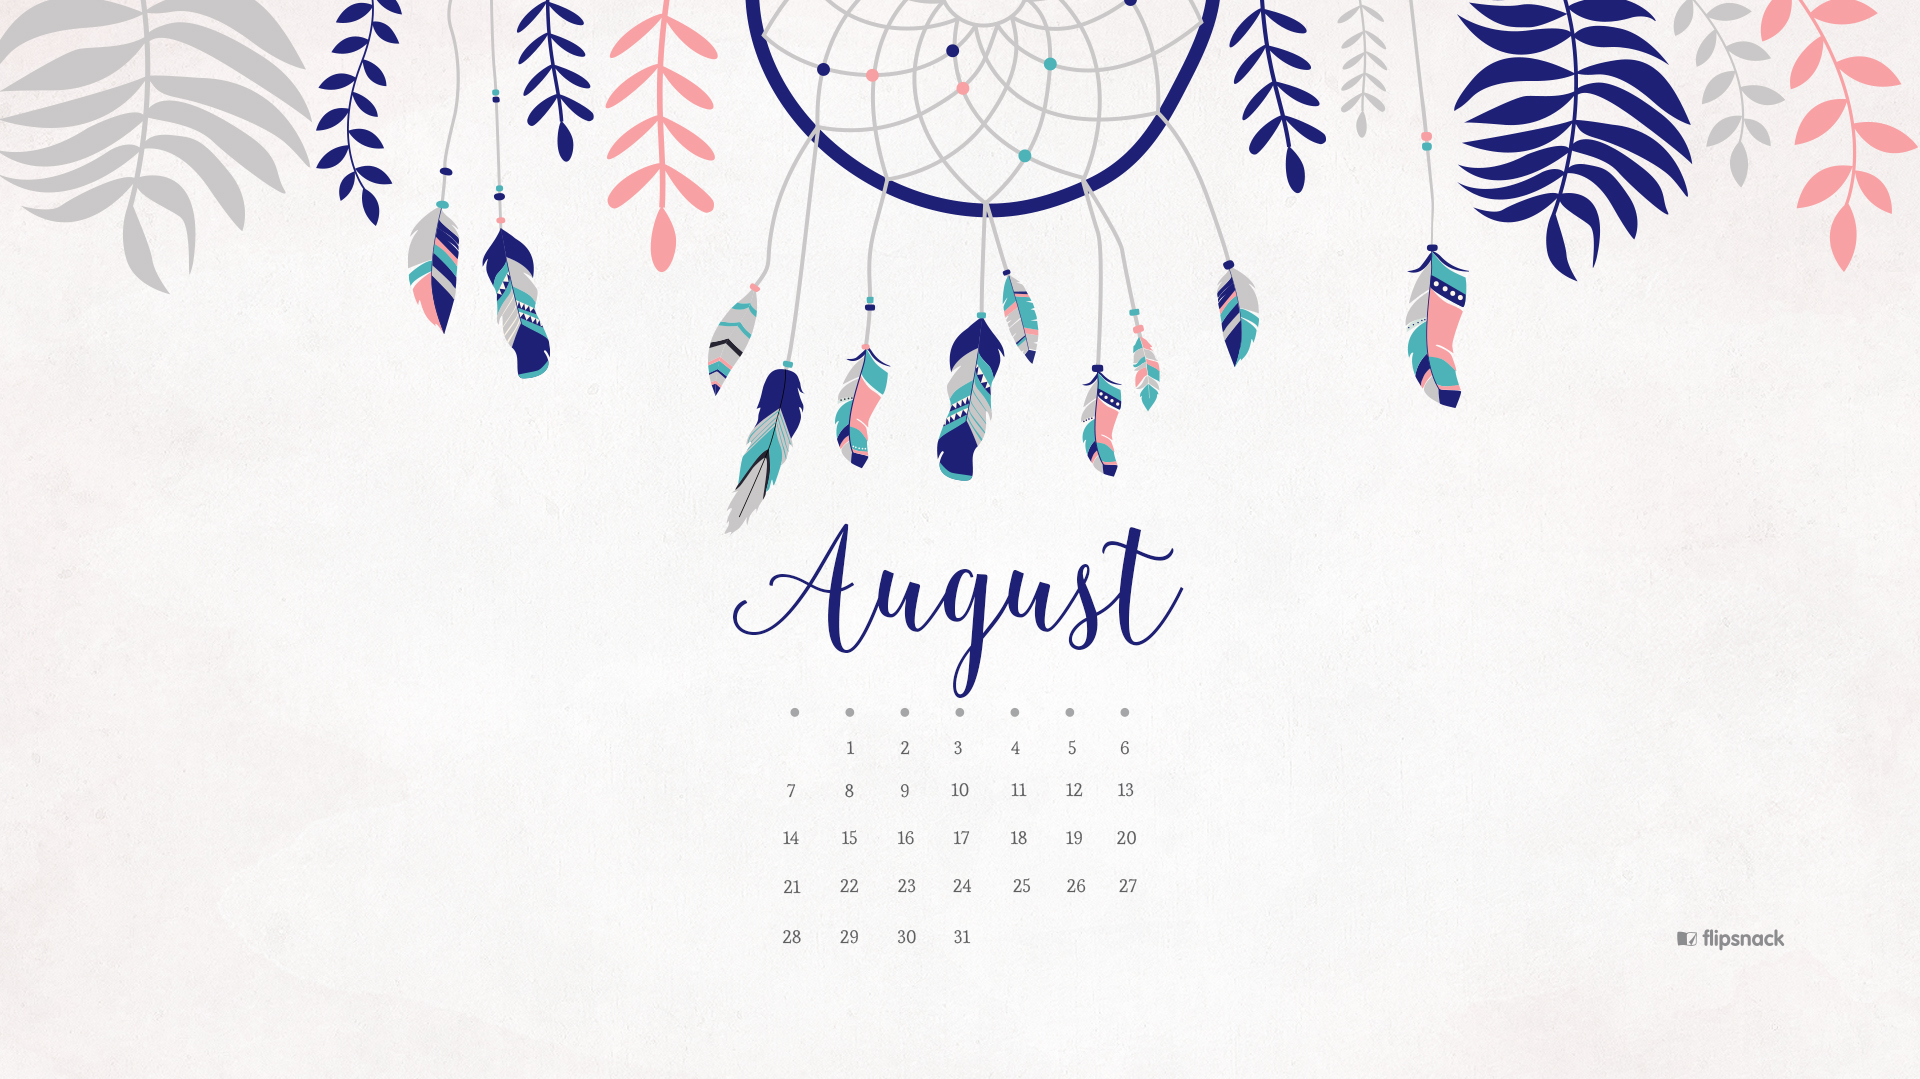 Calendar Background For Desktop : August free calendar desktop wallpaper